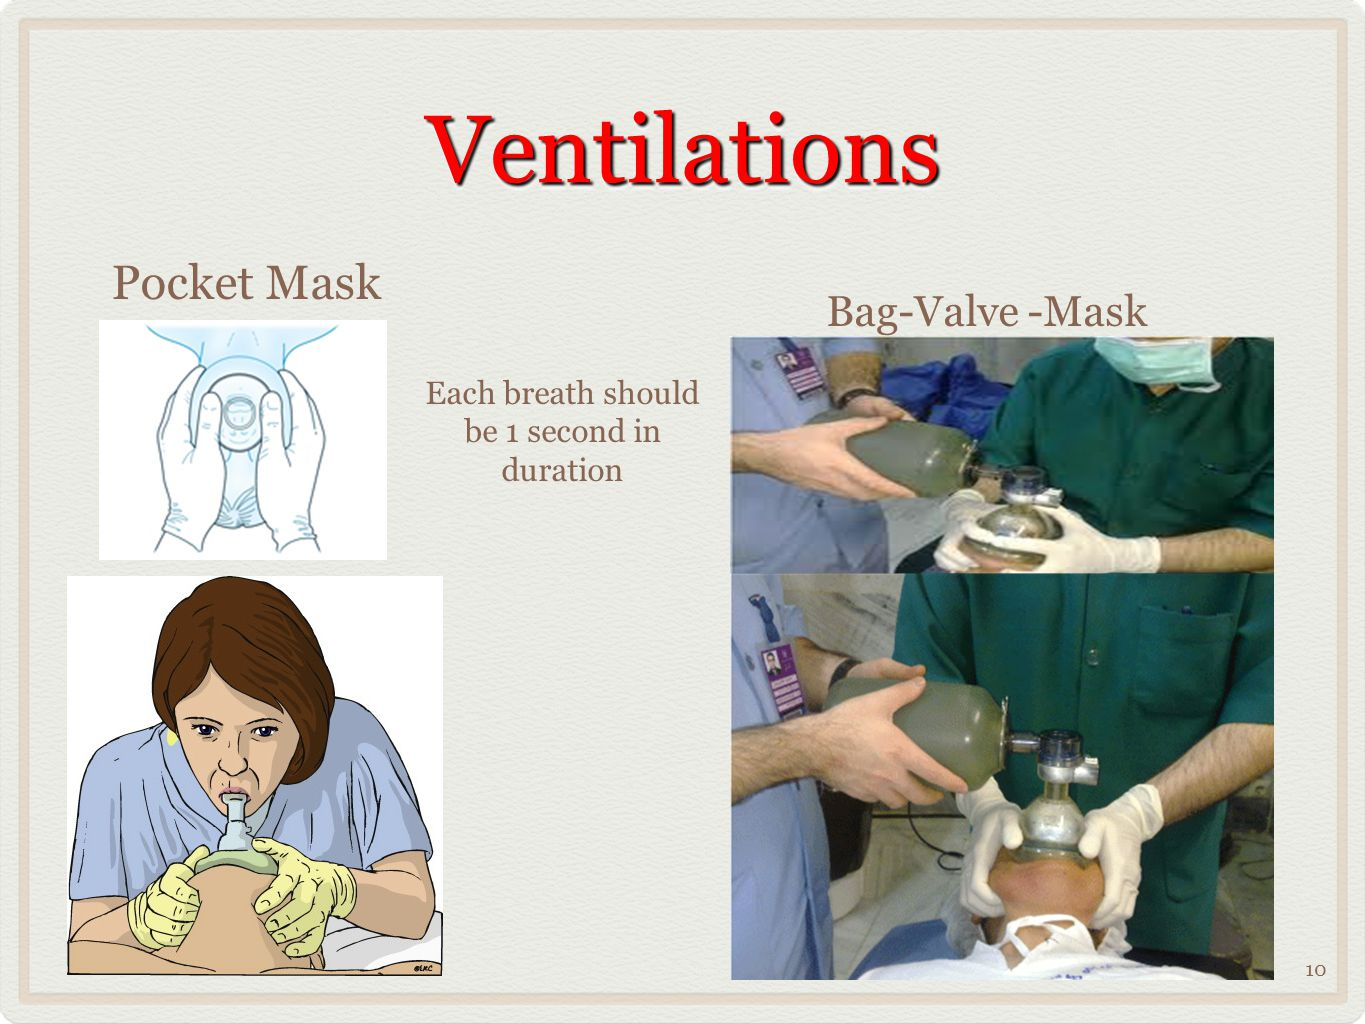 Each breath should be 1 second in duration